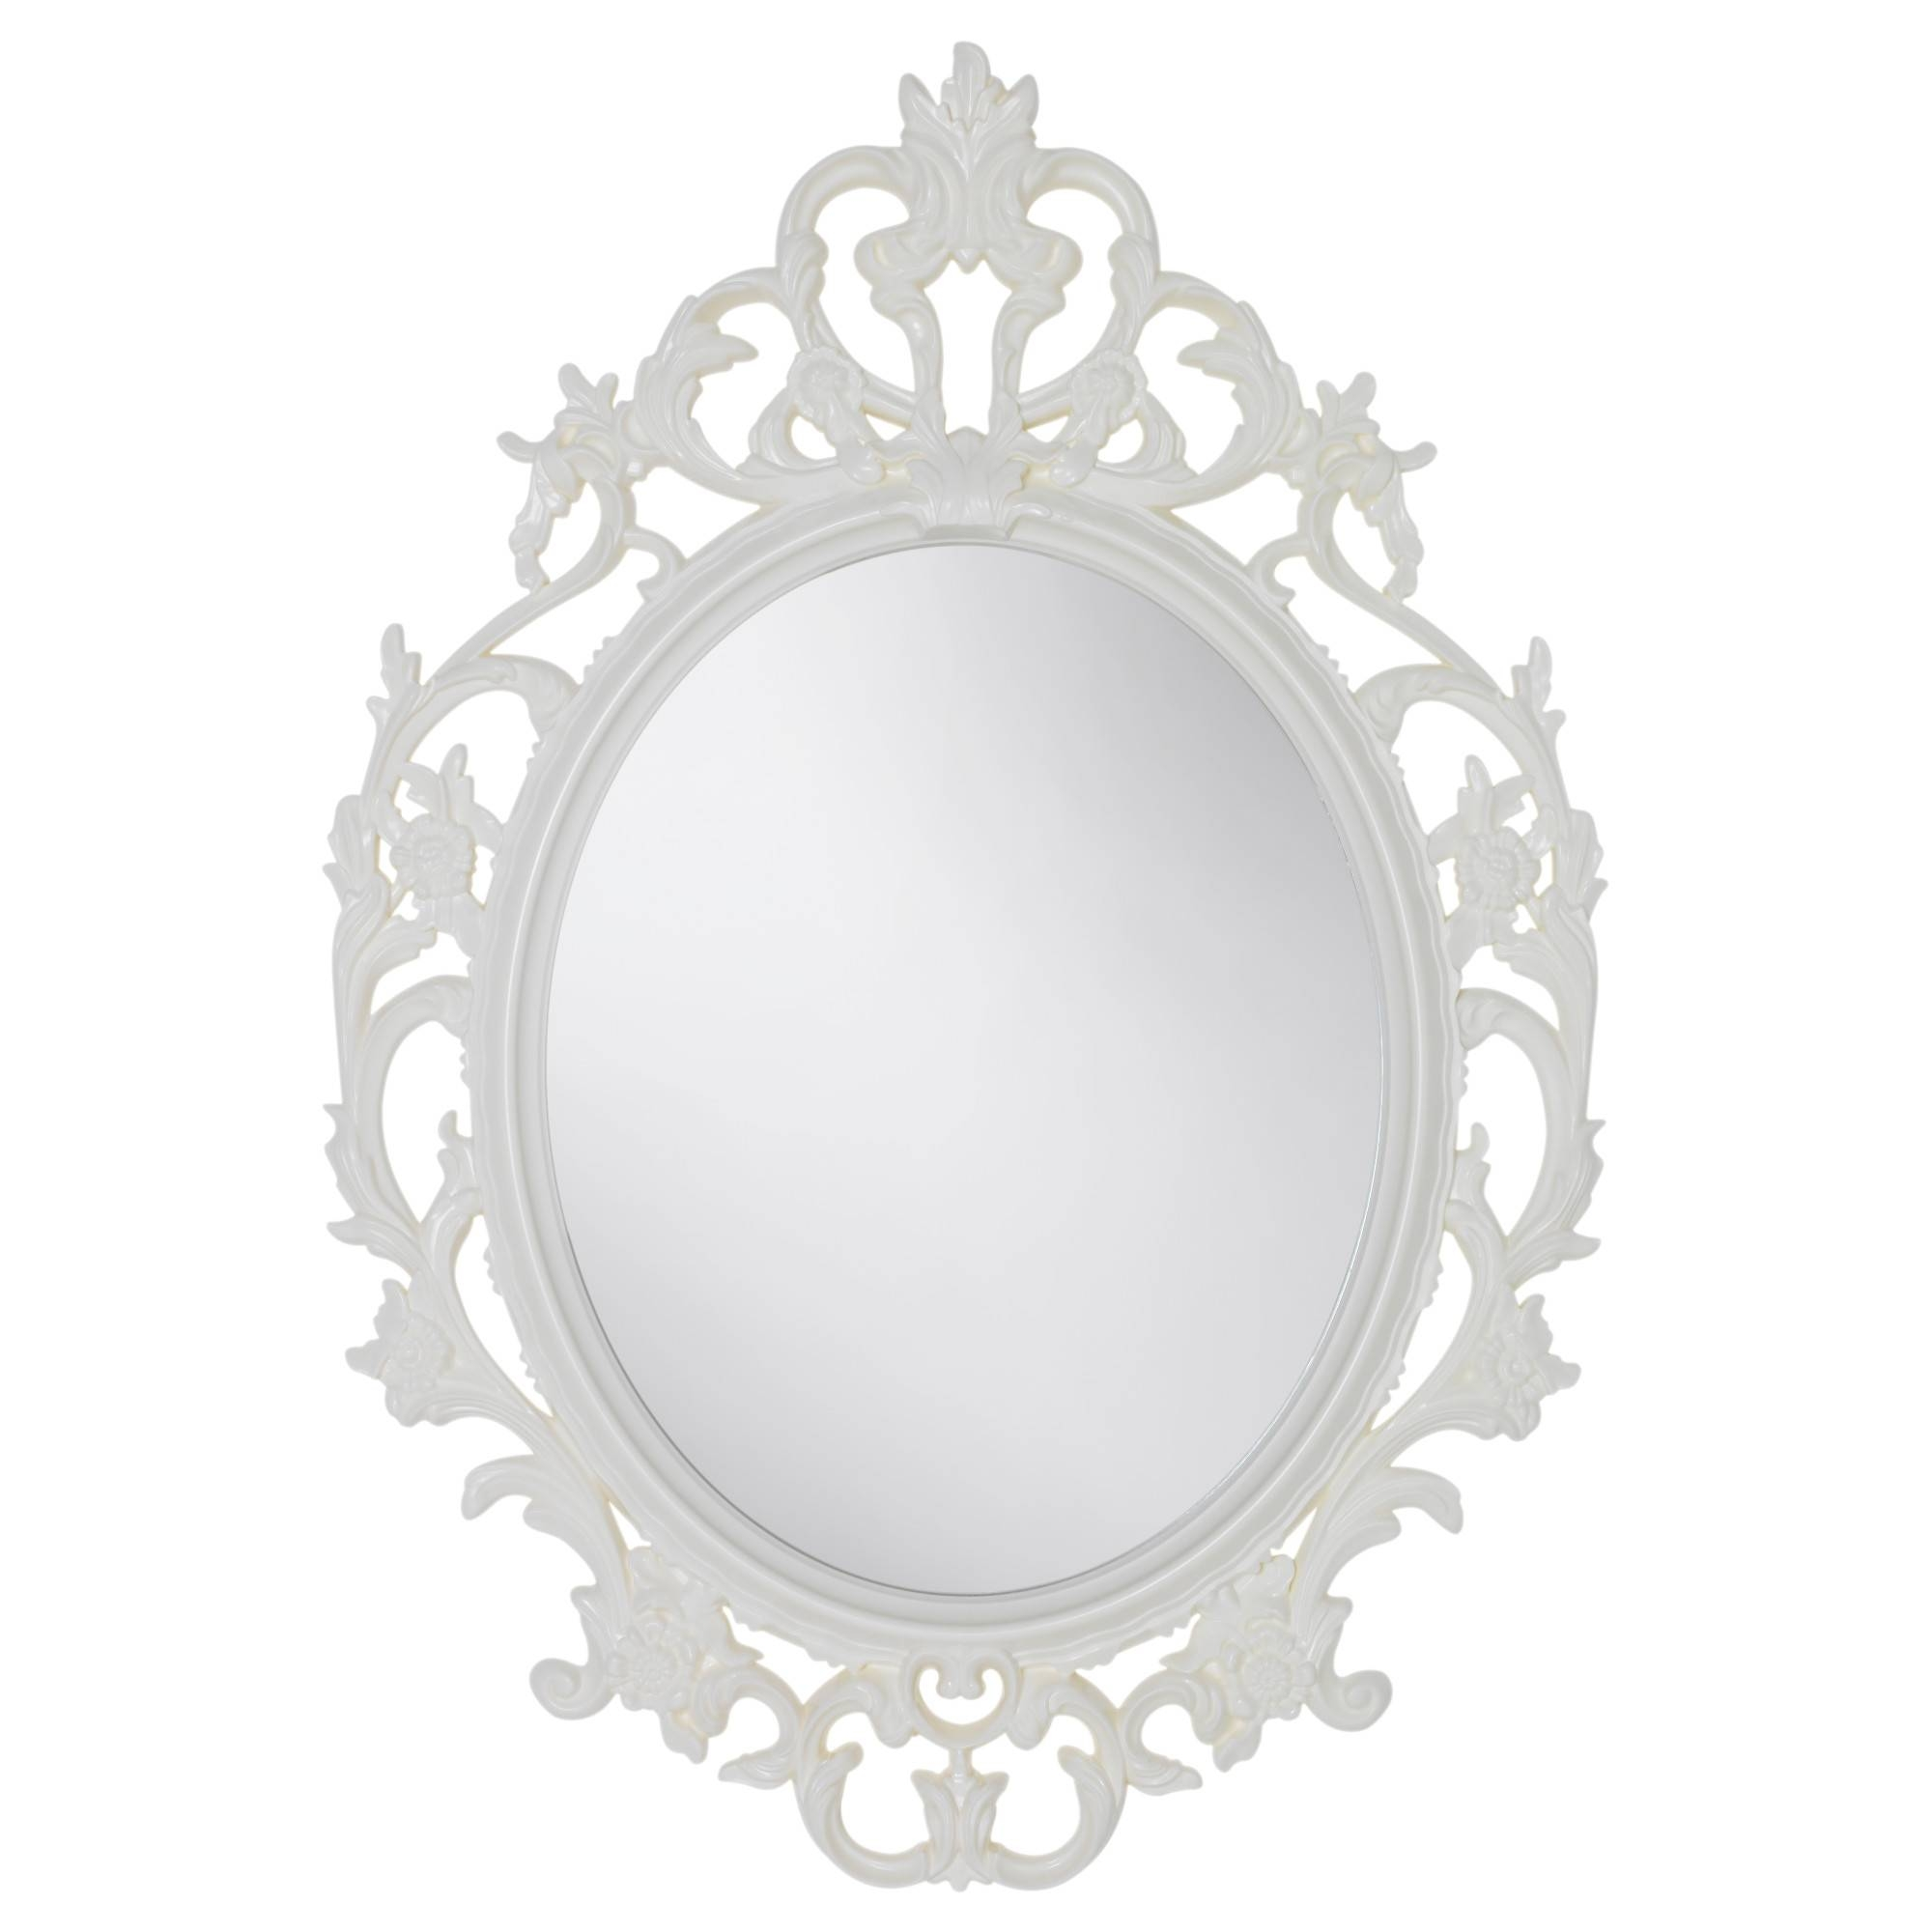 Mirrors - Floor, Table & Wall Mirrors - Ikea within Oval White Mirrors (Image 6 of 15)